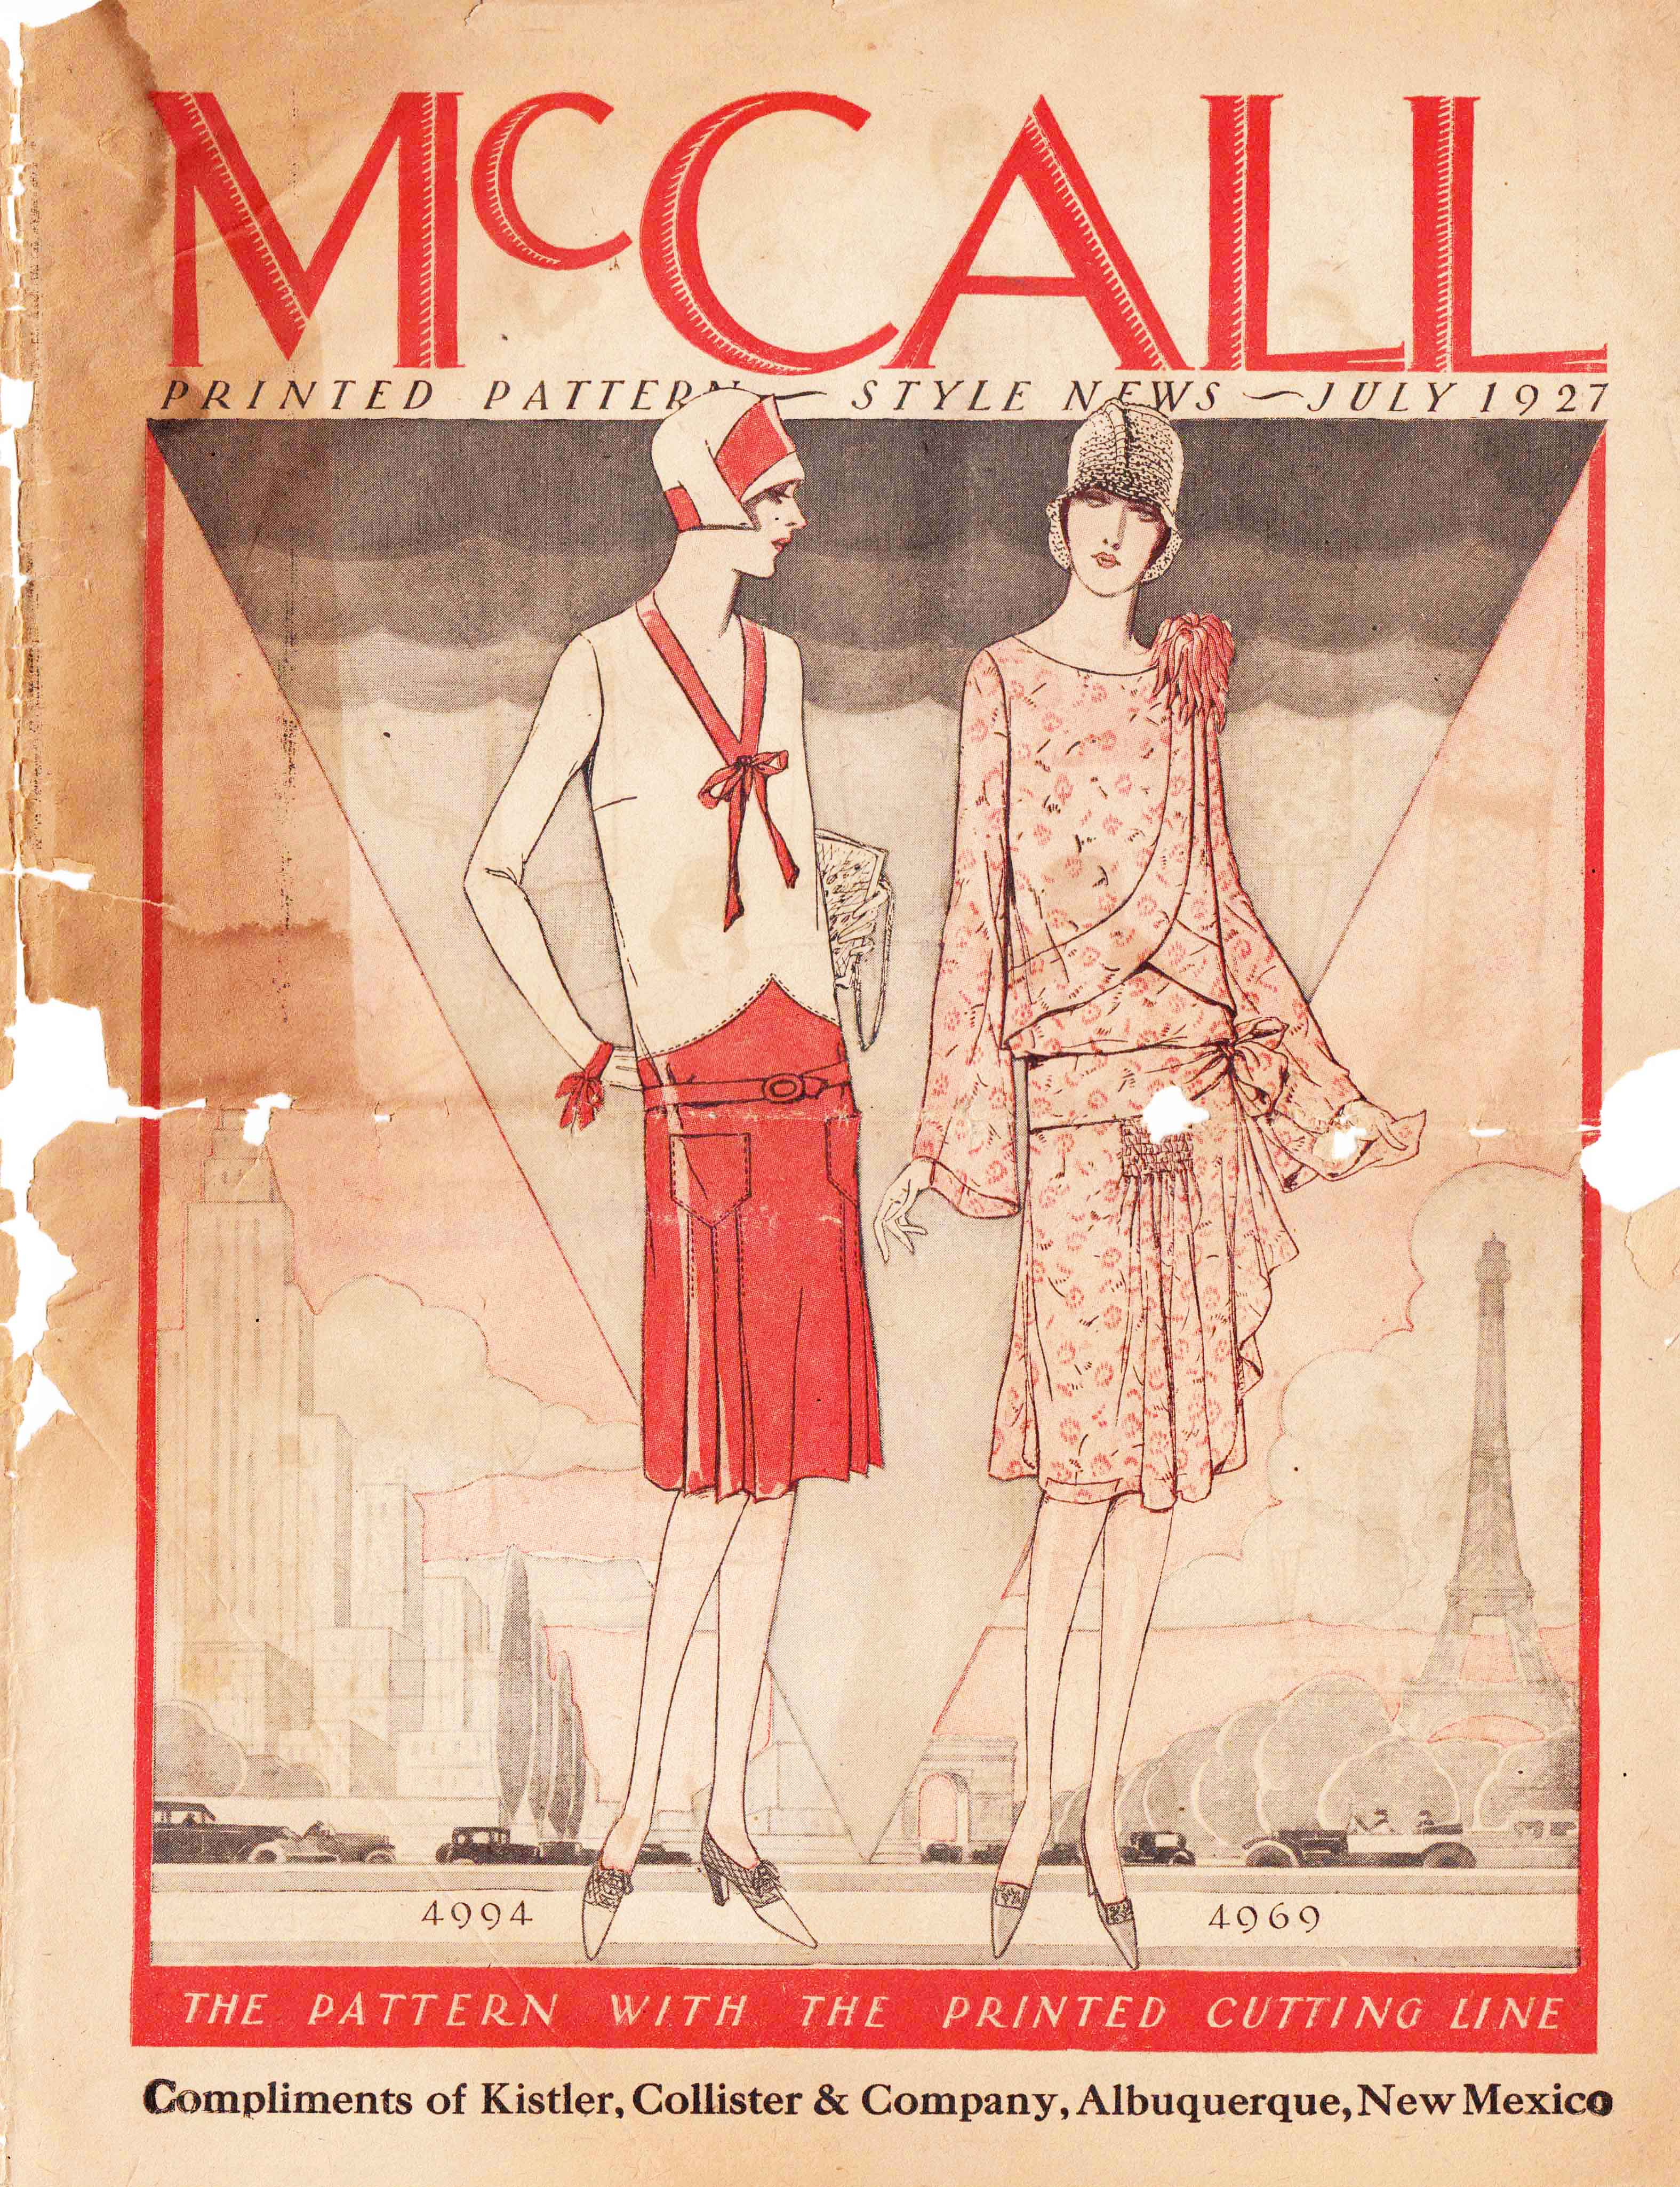 McCall Style News July 1927